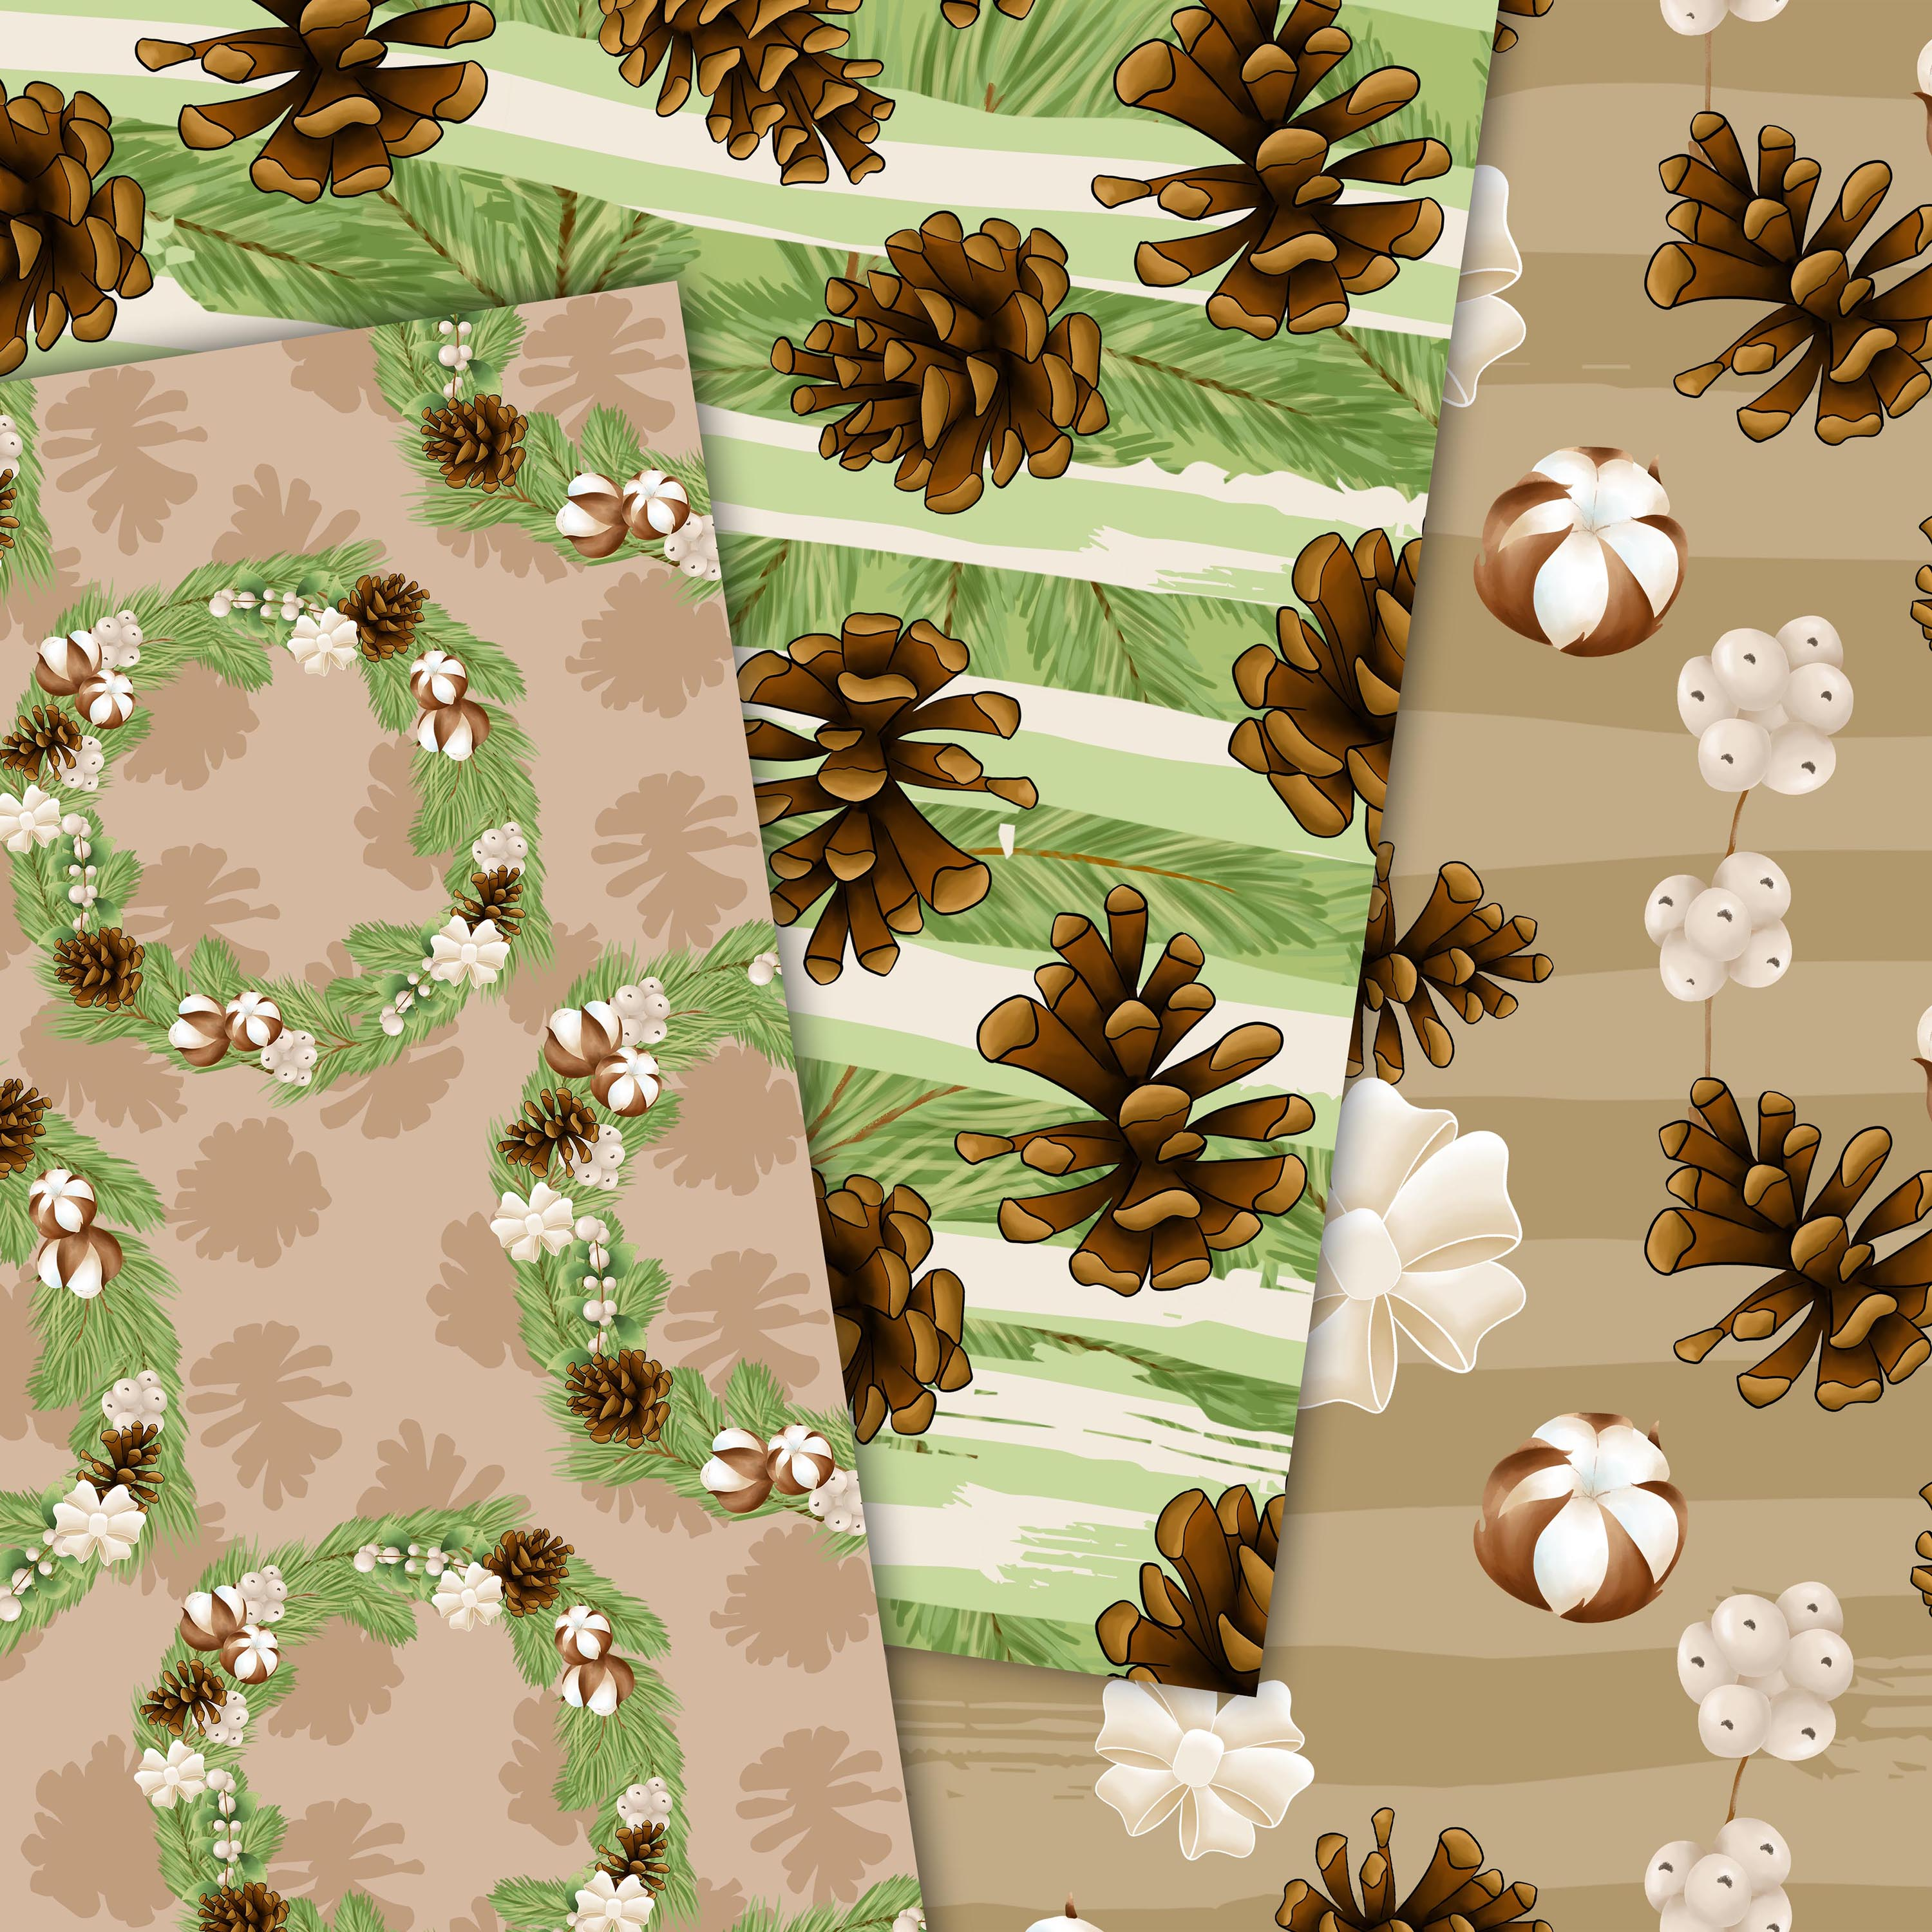 Cotton winter patterns example image 5